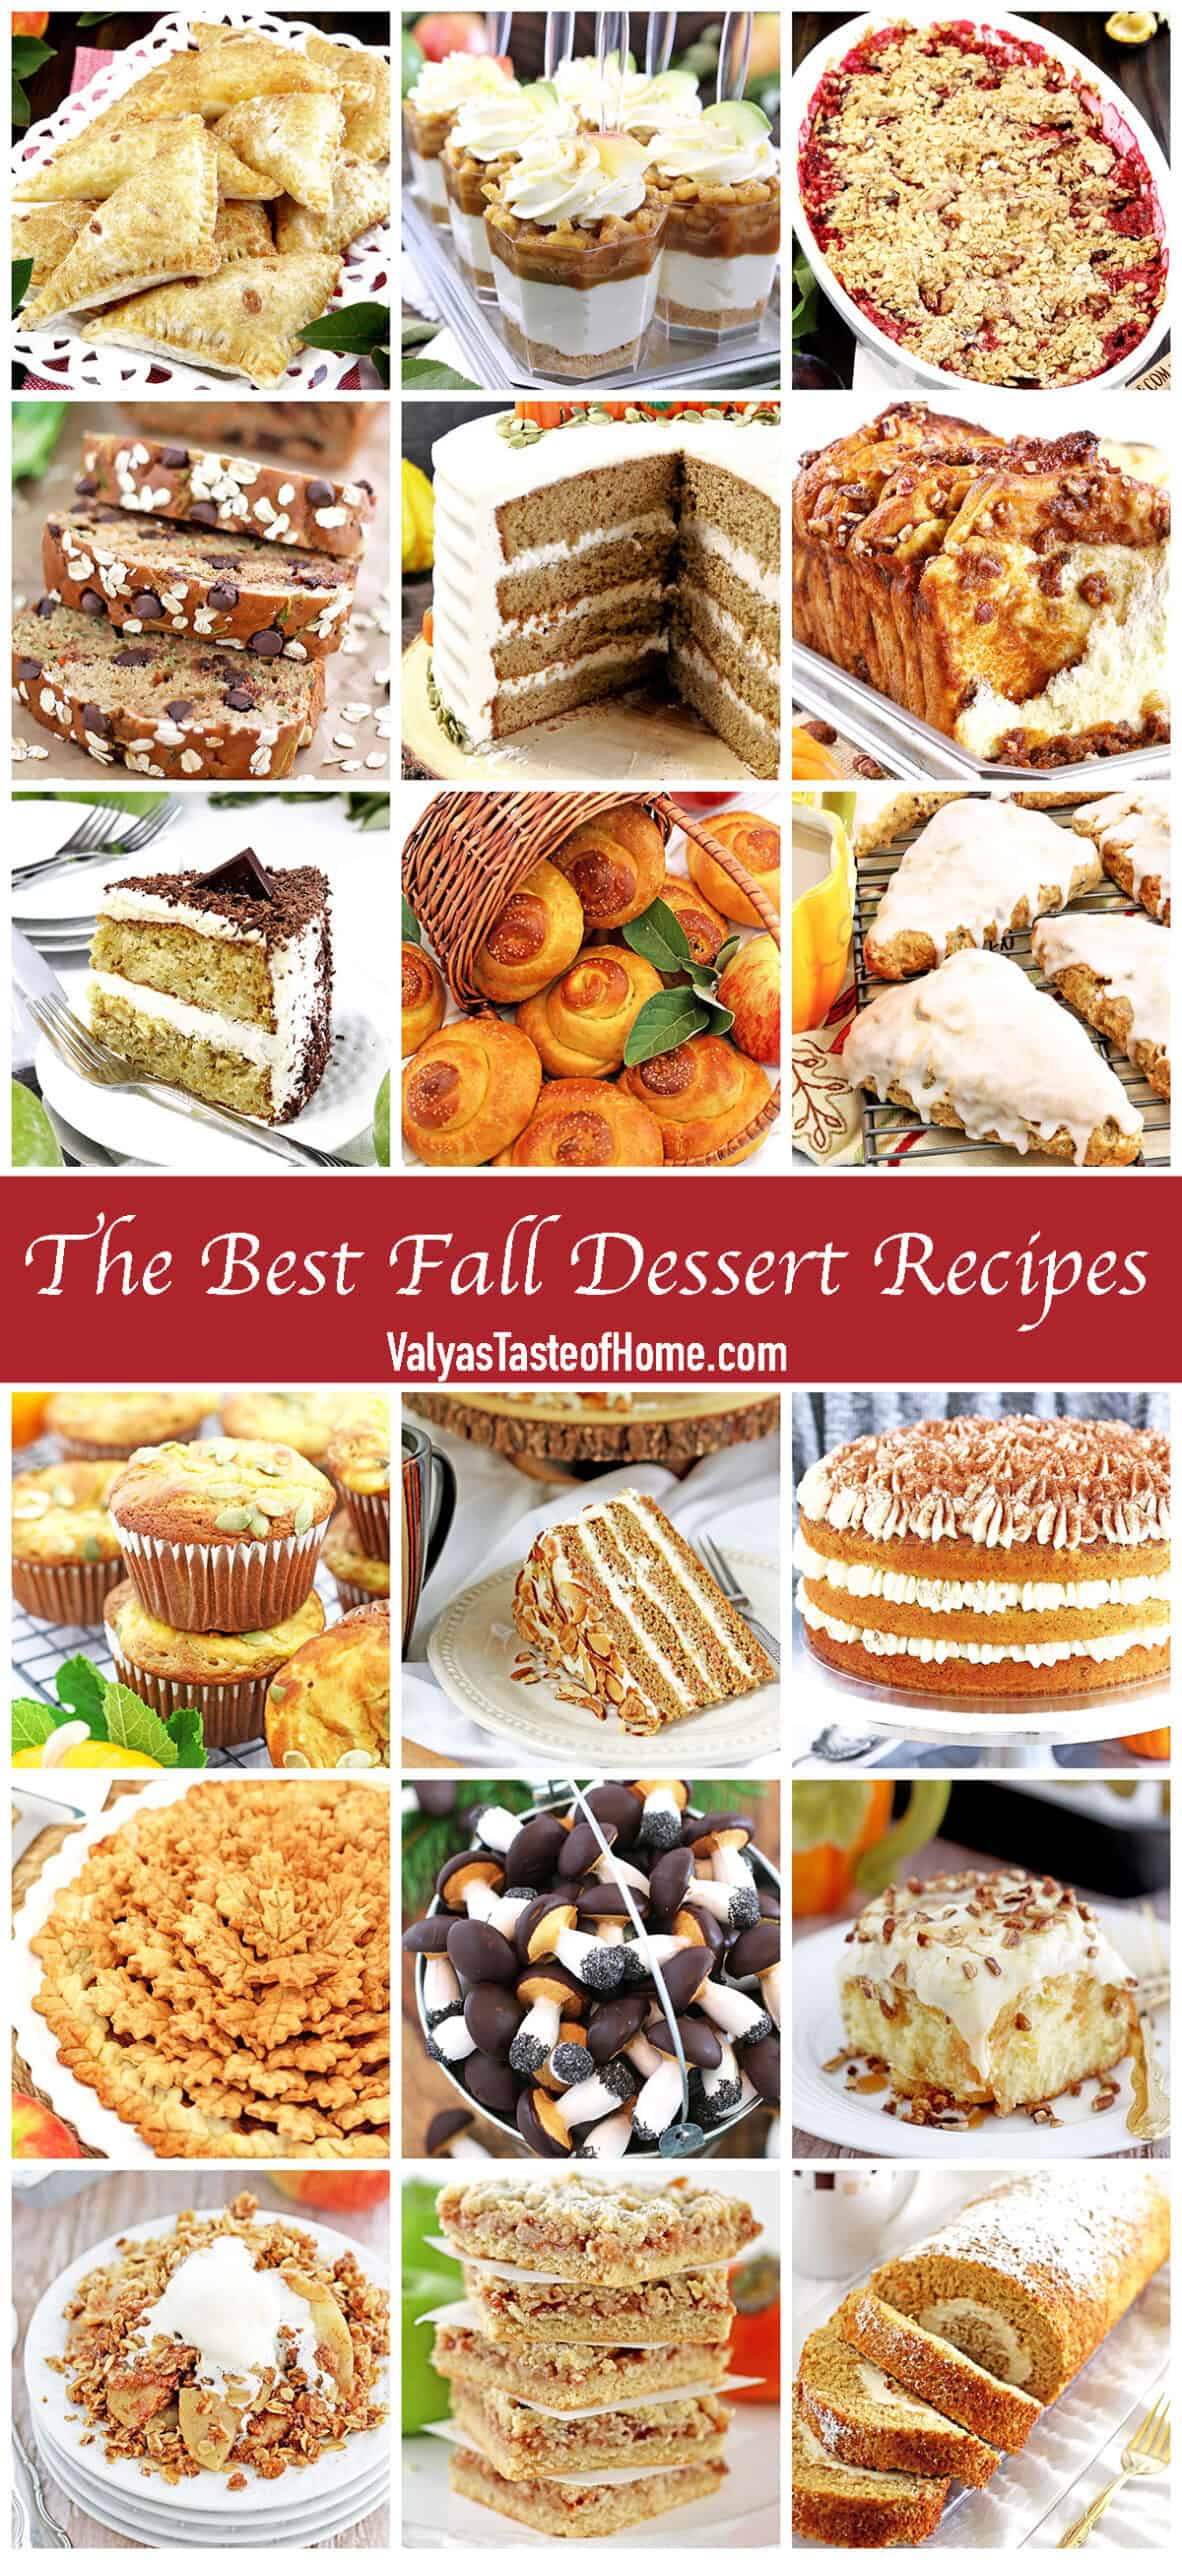 When the leaves start changing their color, and the coolerautumnweather with crisp air it's time to cozy up with a blanket and one of these warming The Best Fall Dessert Recipes with a cup of my favorite homemade hot vanilla caramel latte.